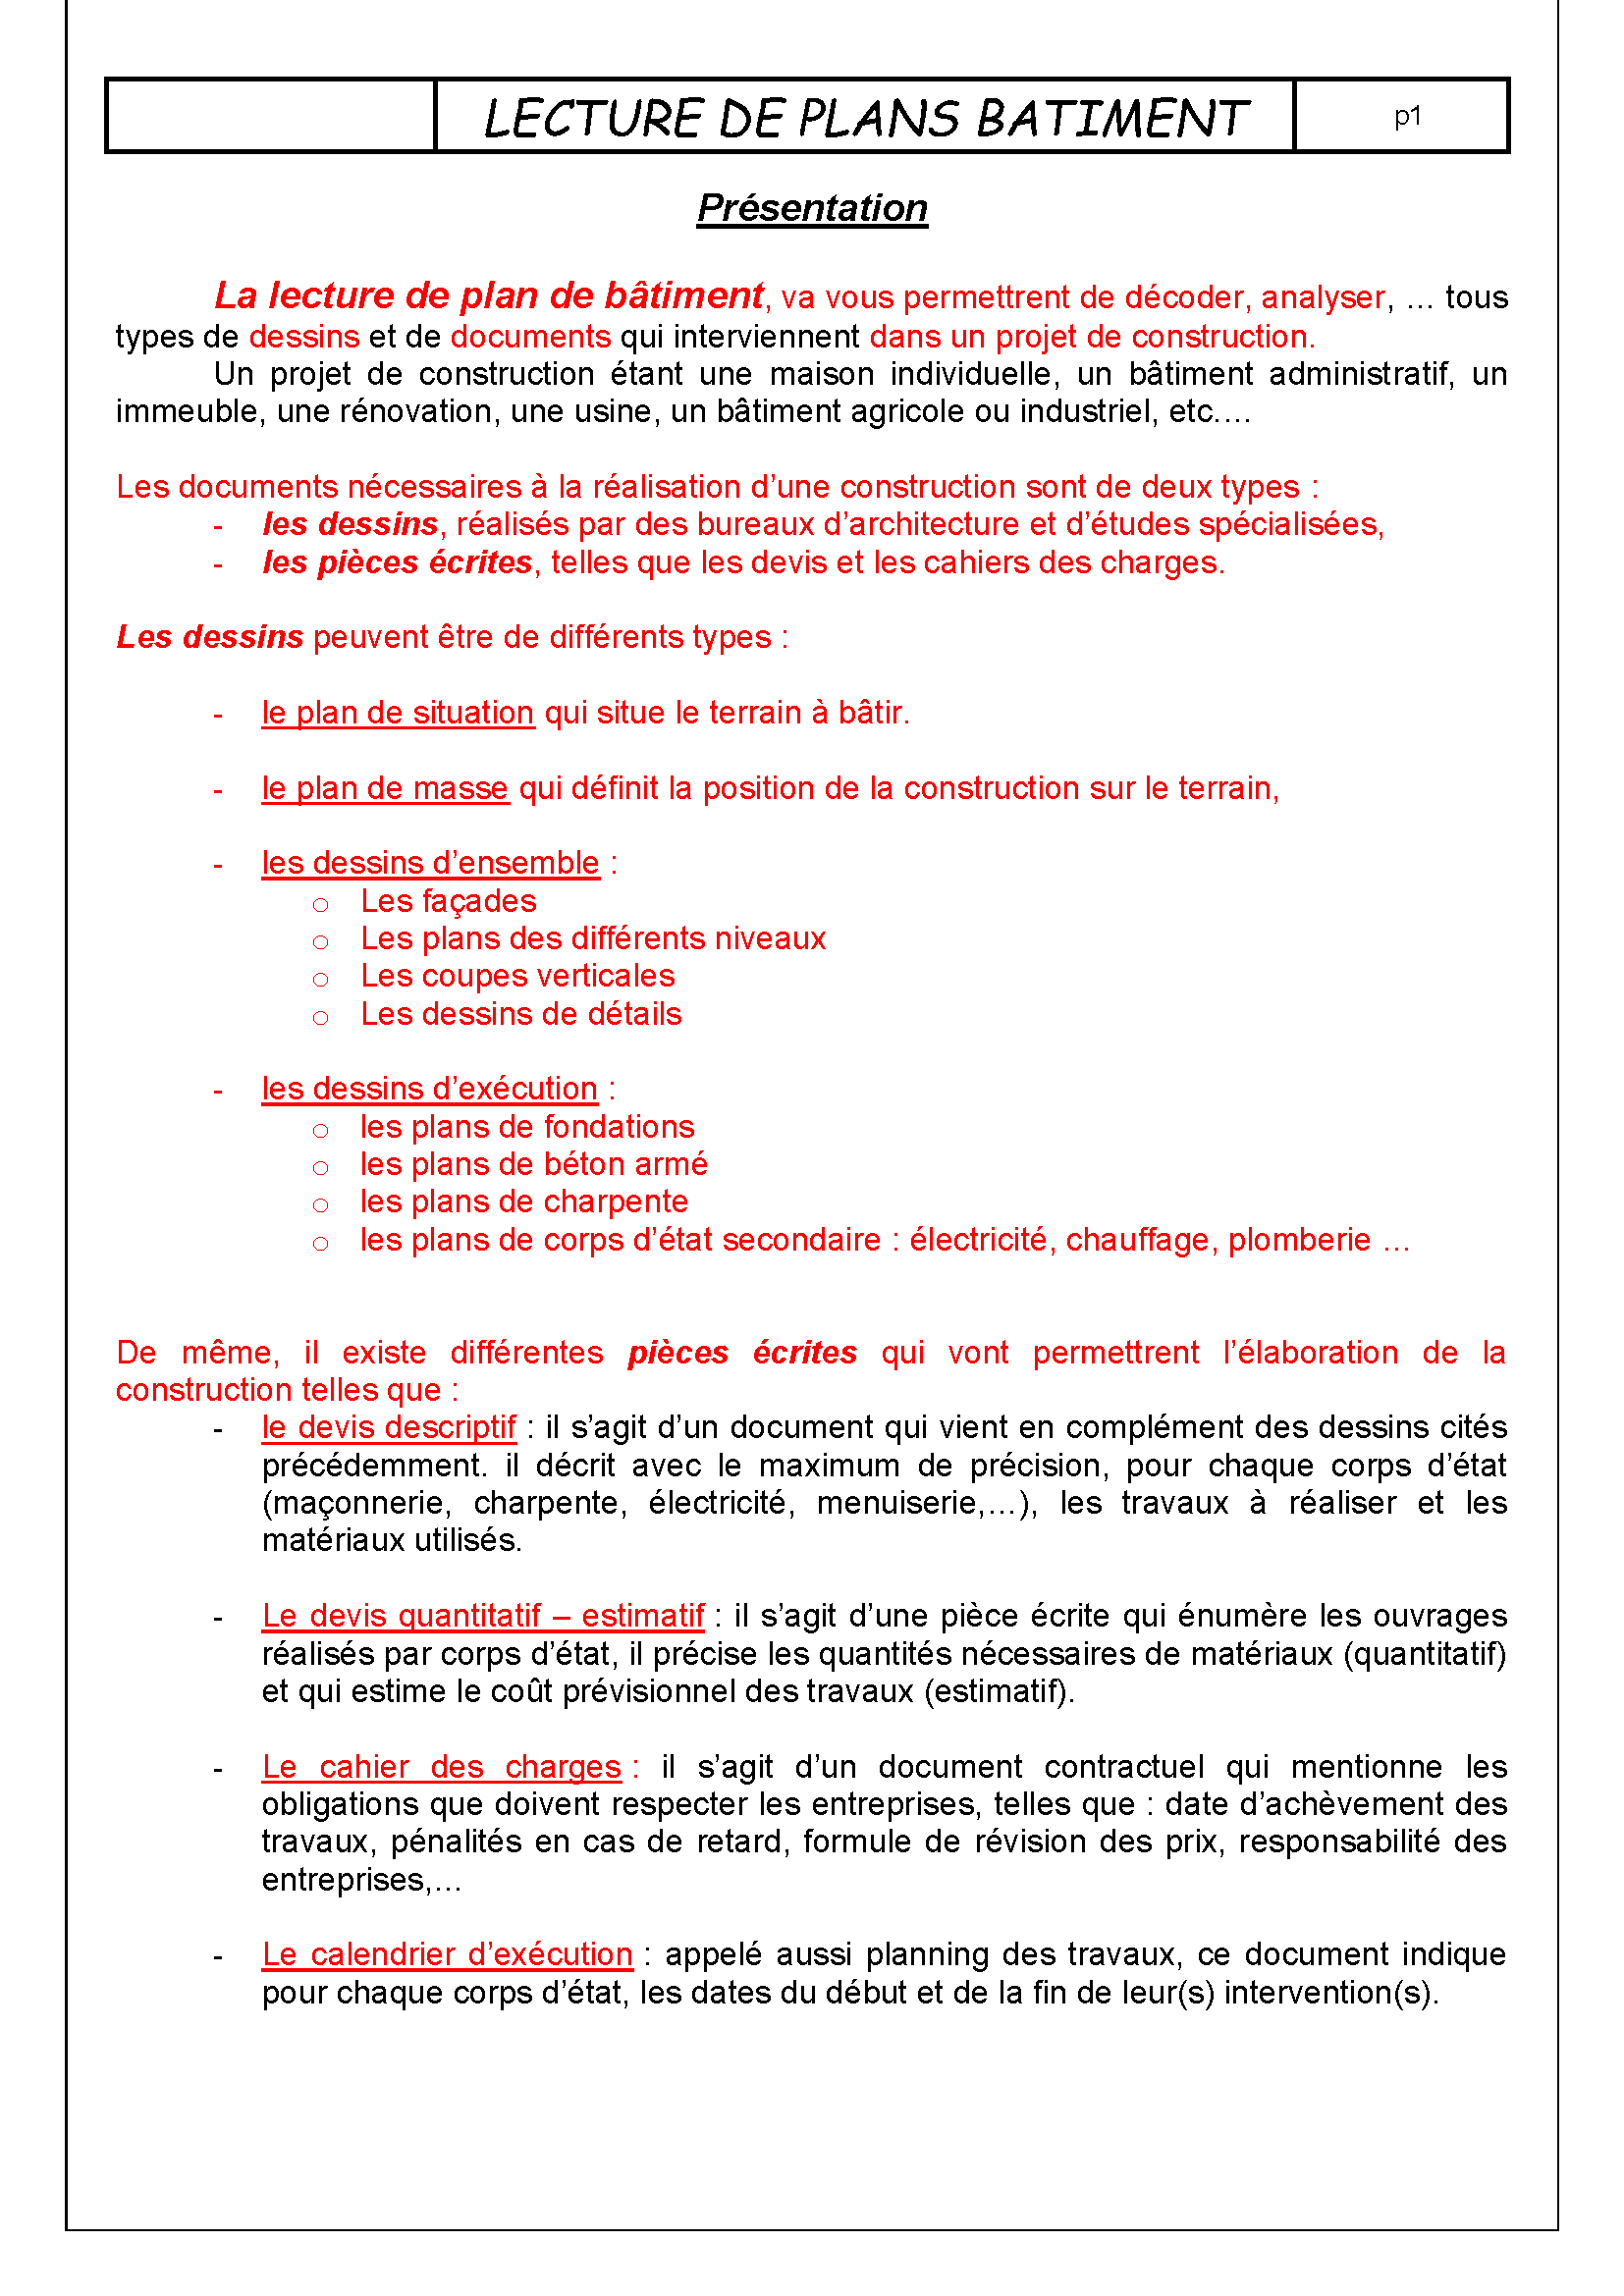 Lecture batiment page 01 for Plans et dessins de construction